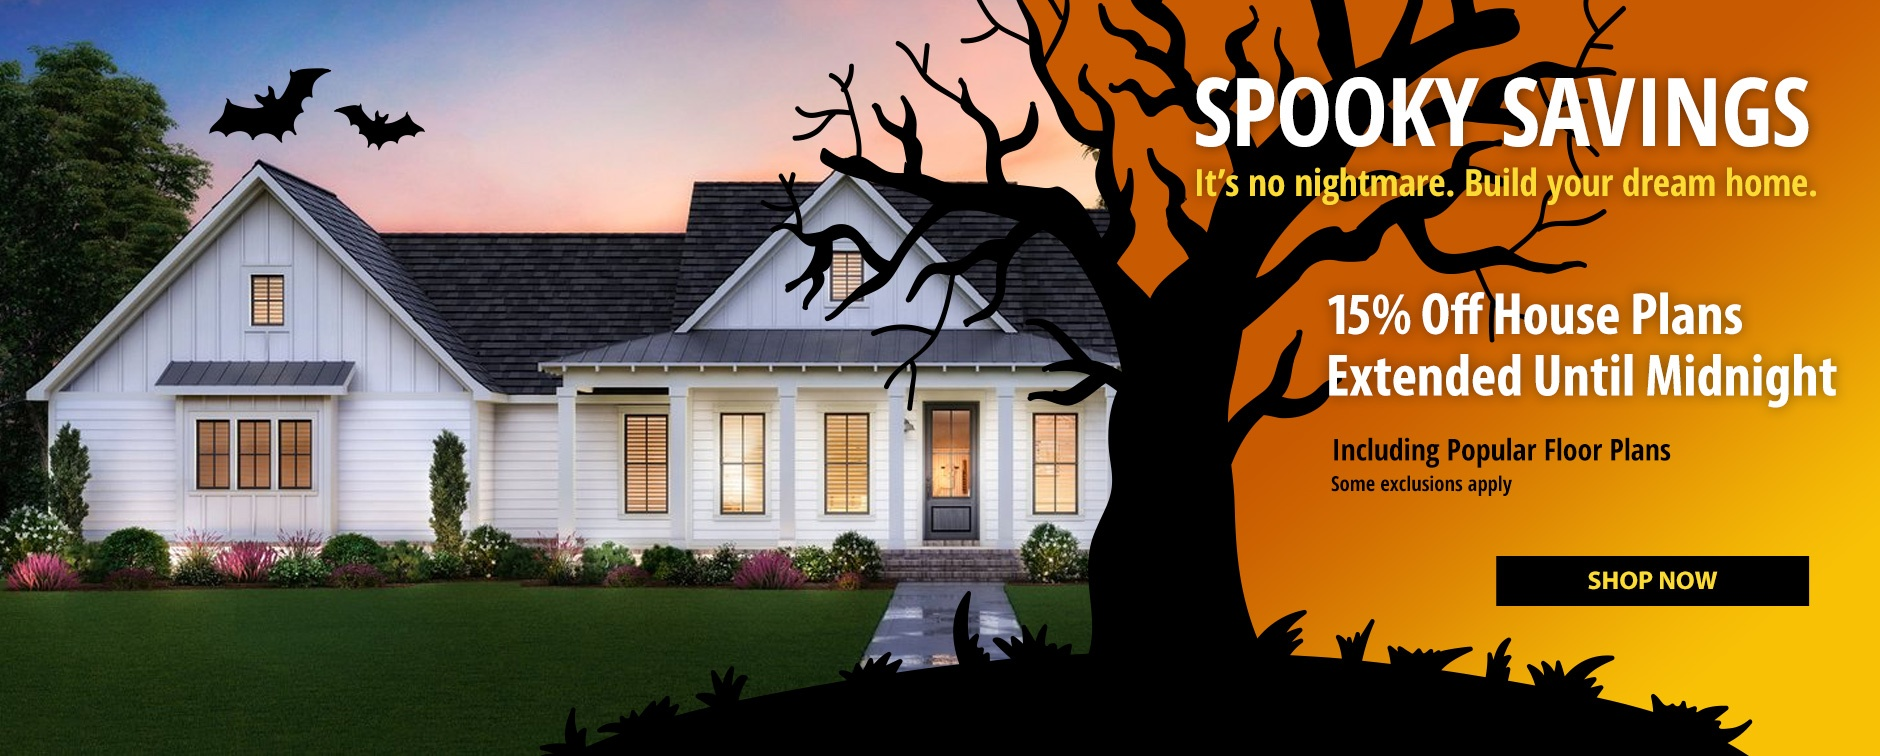 Builder House Plan Sale 15% Off Last Day